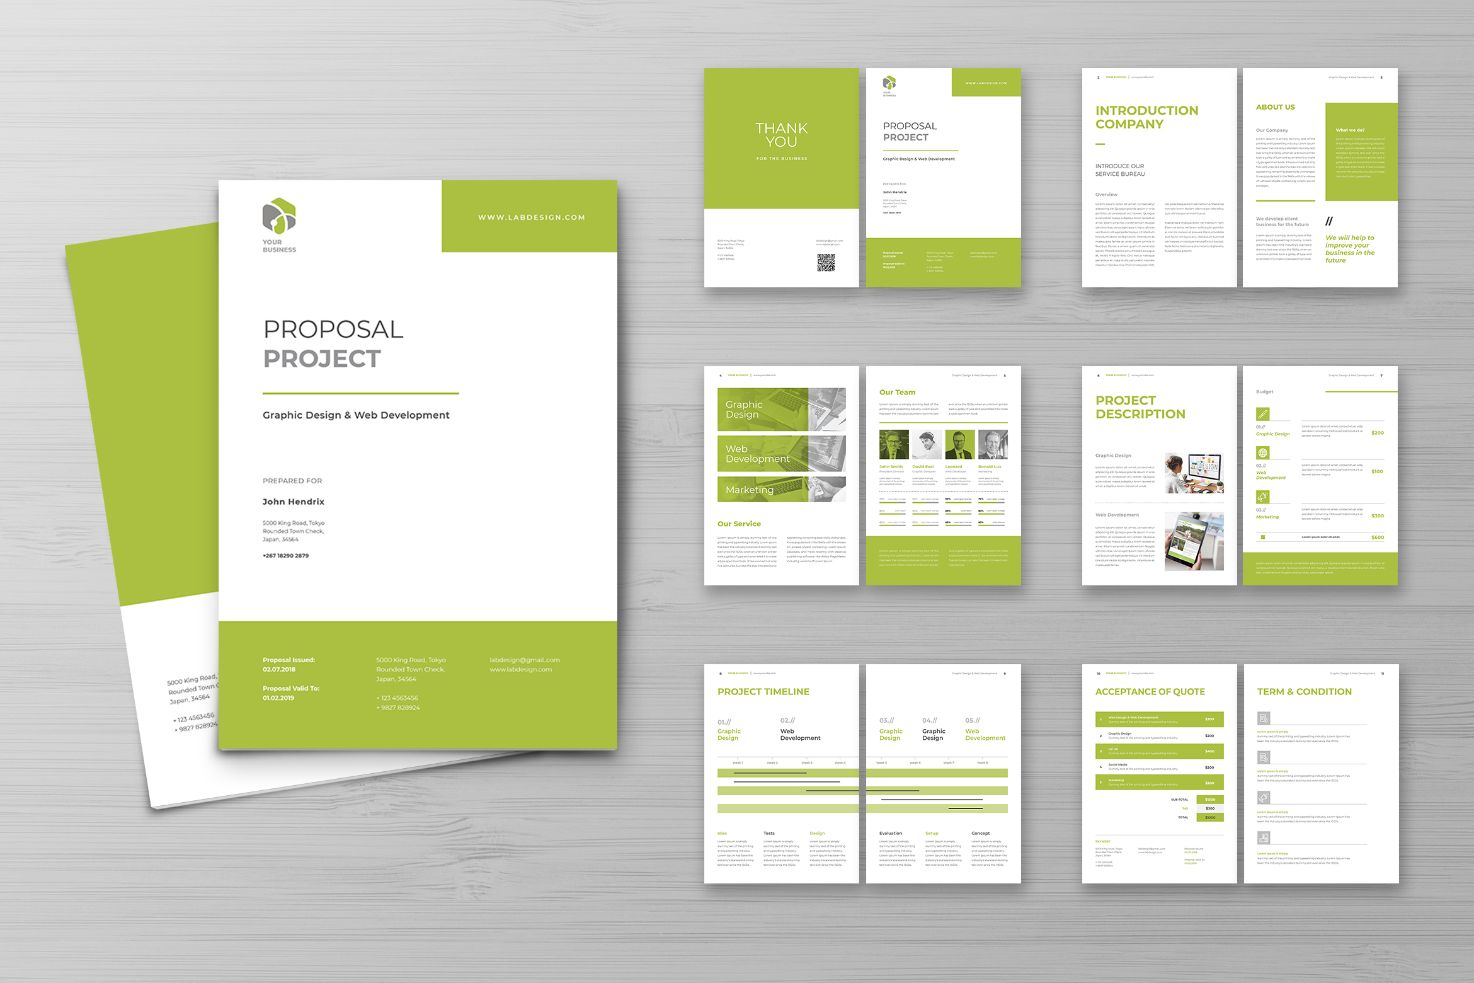 Proposal Graphic Design Project Corporate Identity Template